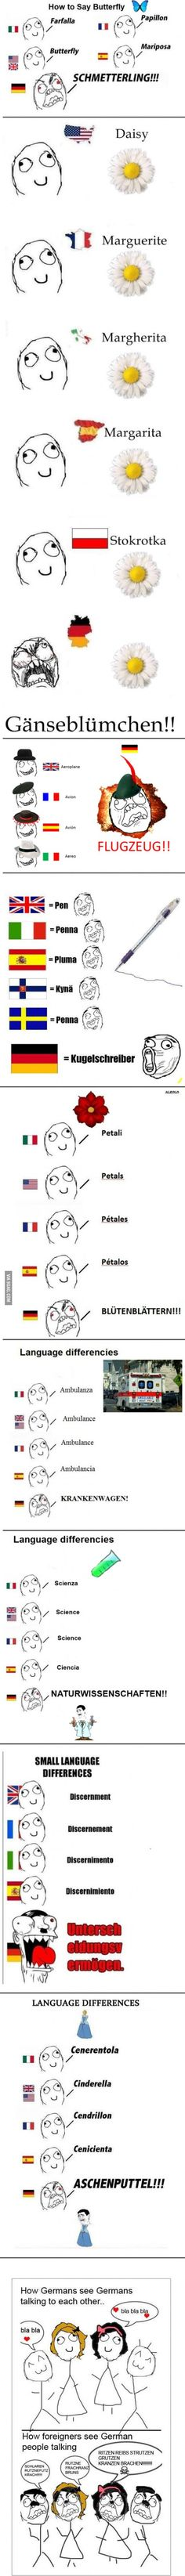 Gotta love the German language...